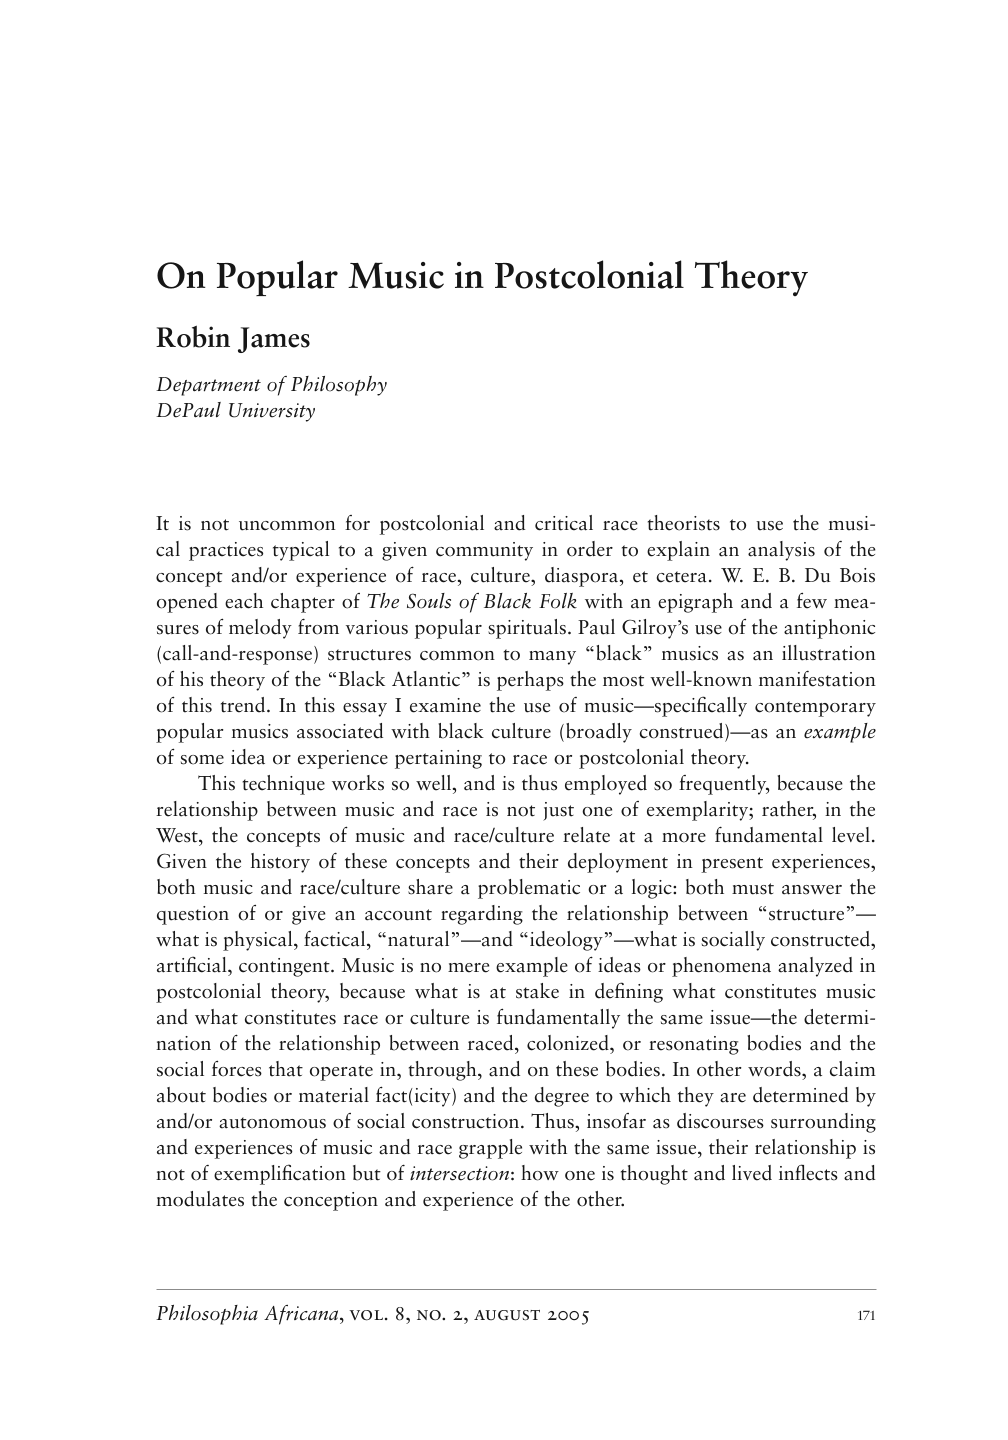 On Popular Music in Postcolonial Theory - Robin James